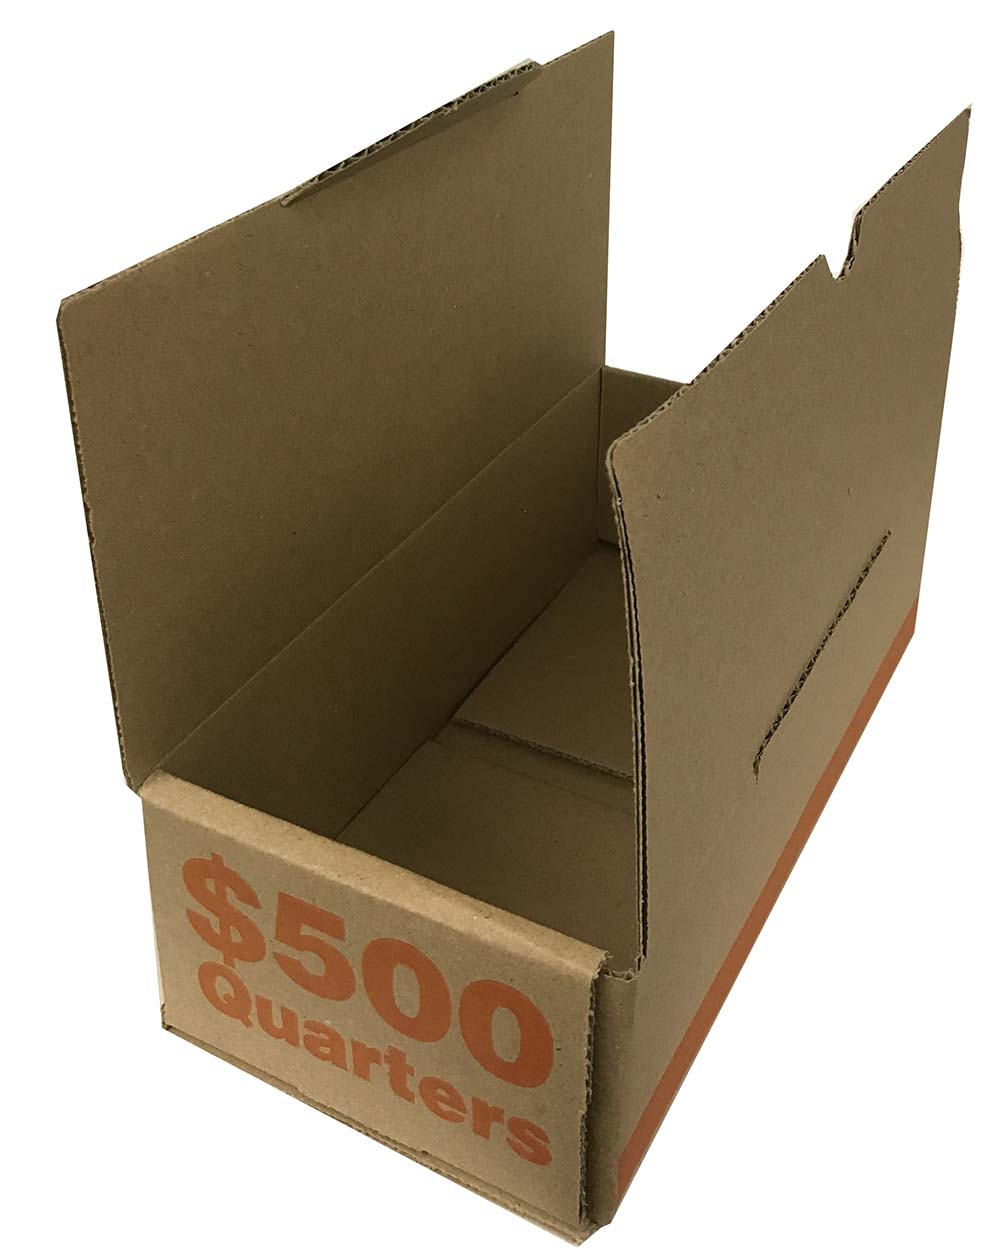 Guardhouse EACH BOX CAN HOLD UP TO 50 ROLLS QUARTER ROLL STORAGE BOX - NEW